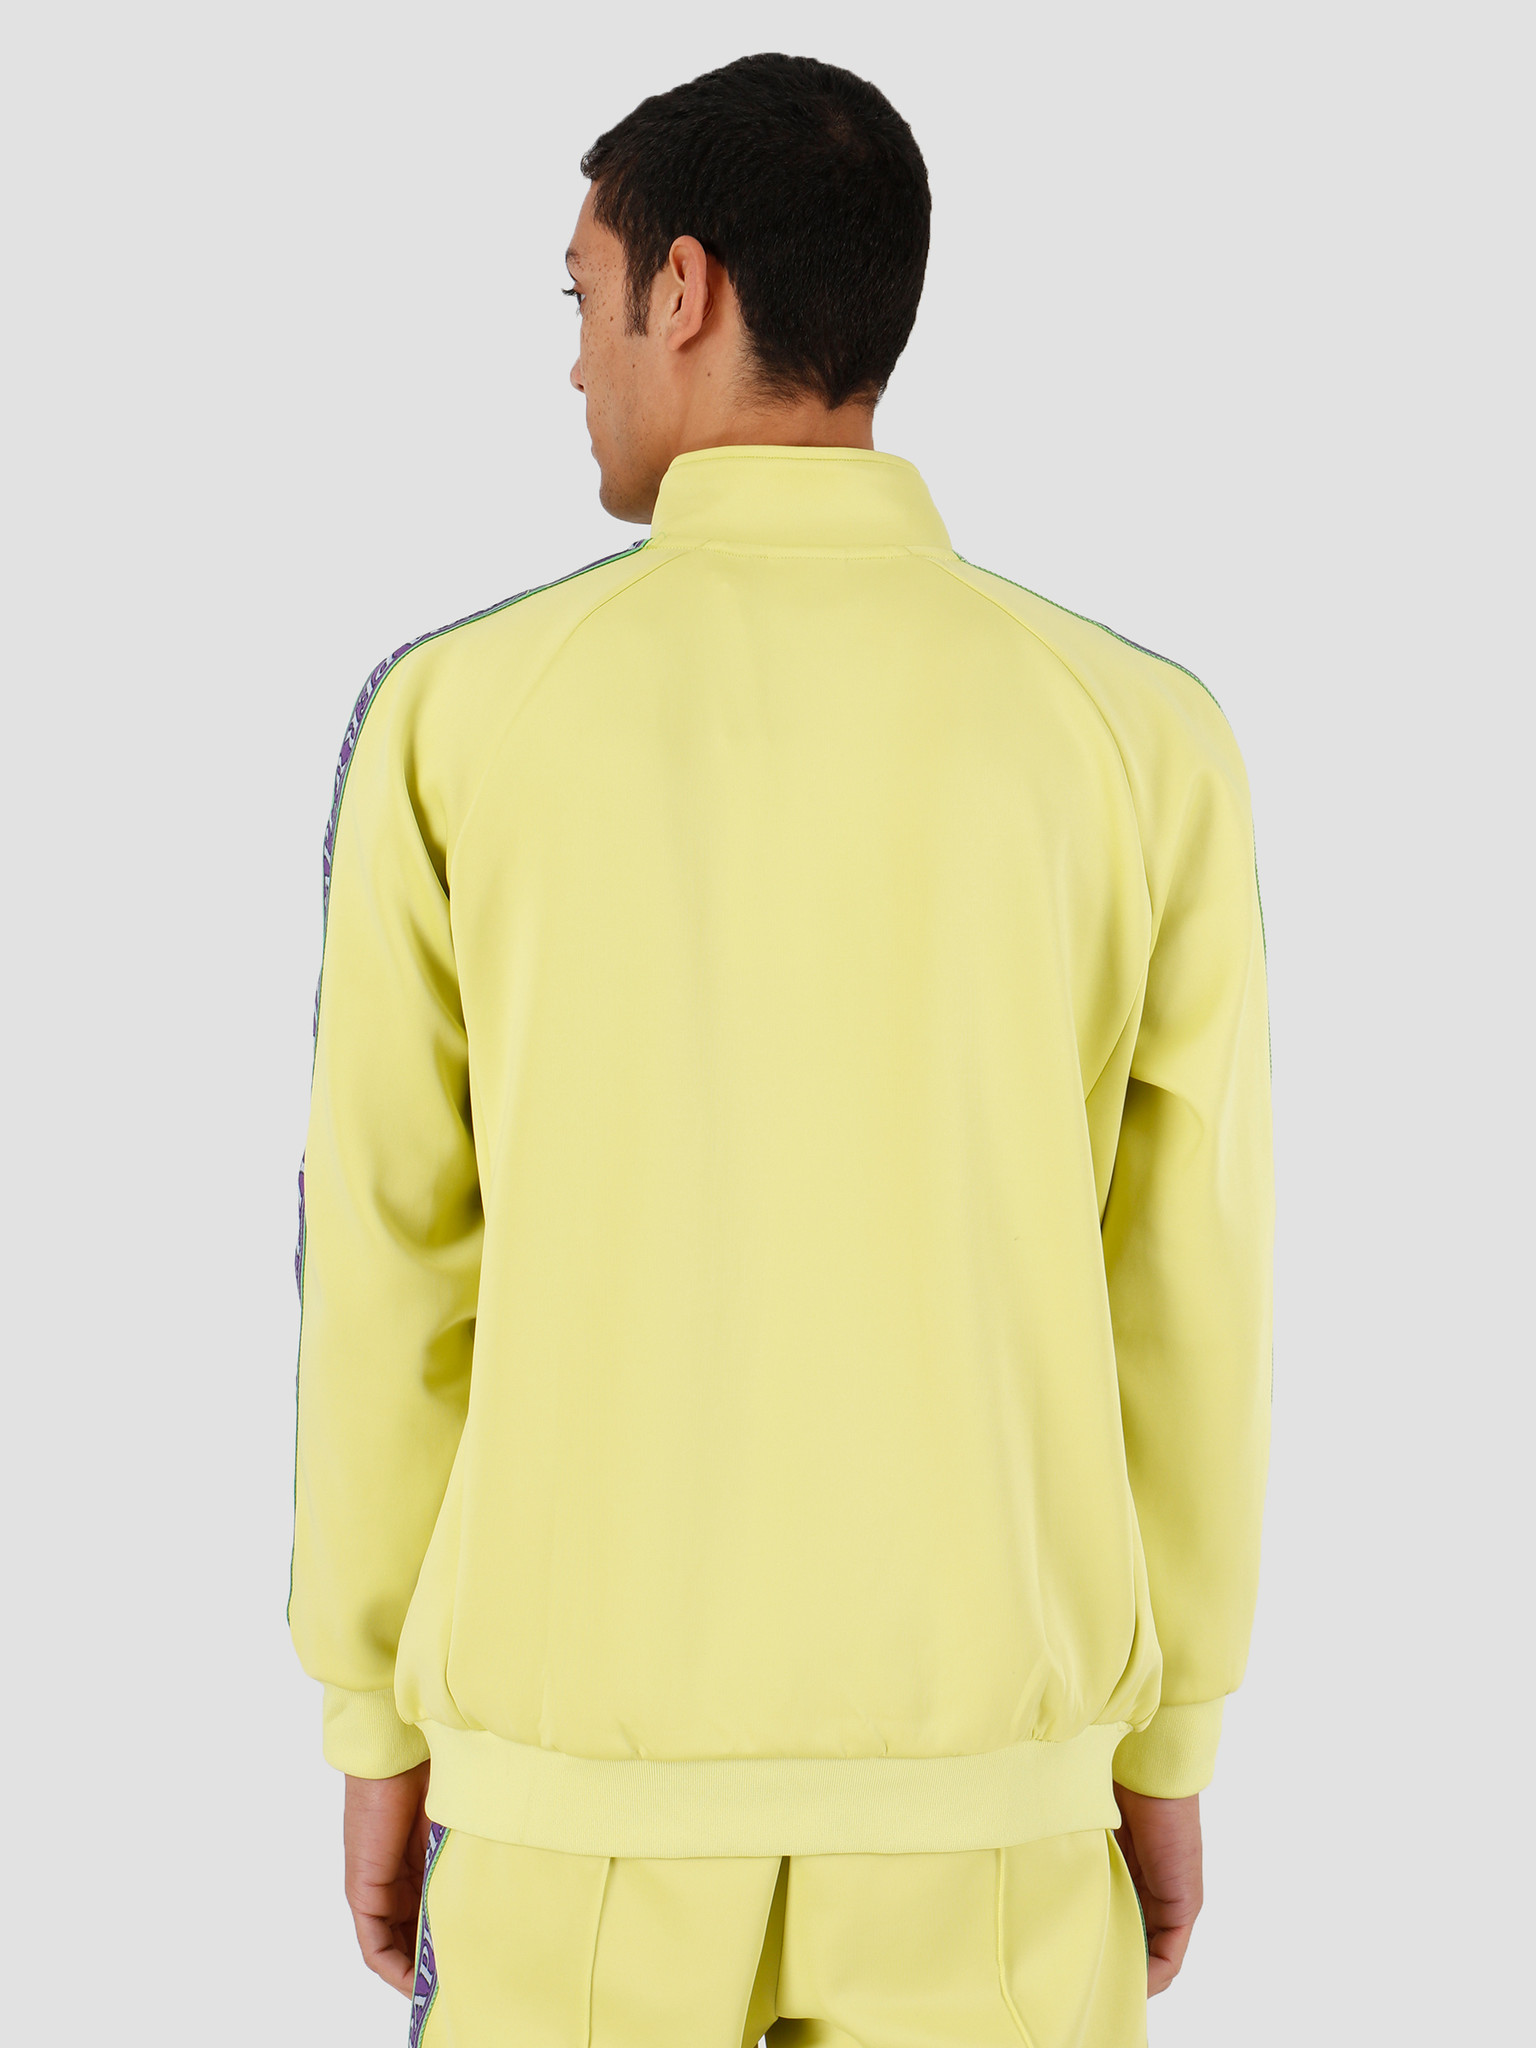 Daily Paper Daily Paper Tapevest Outerwear Canary Yellow 20S1OU04-02